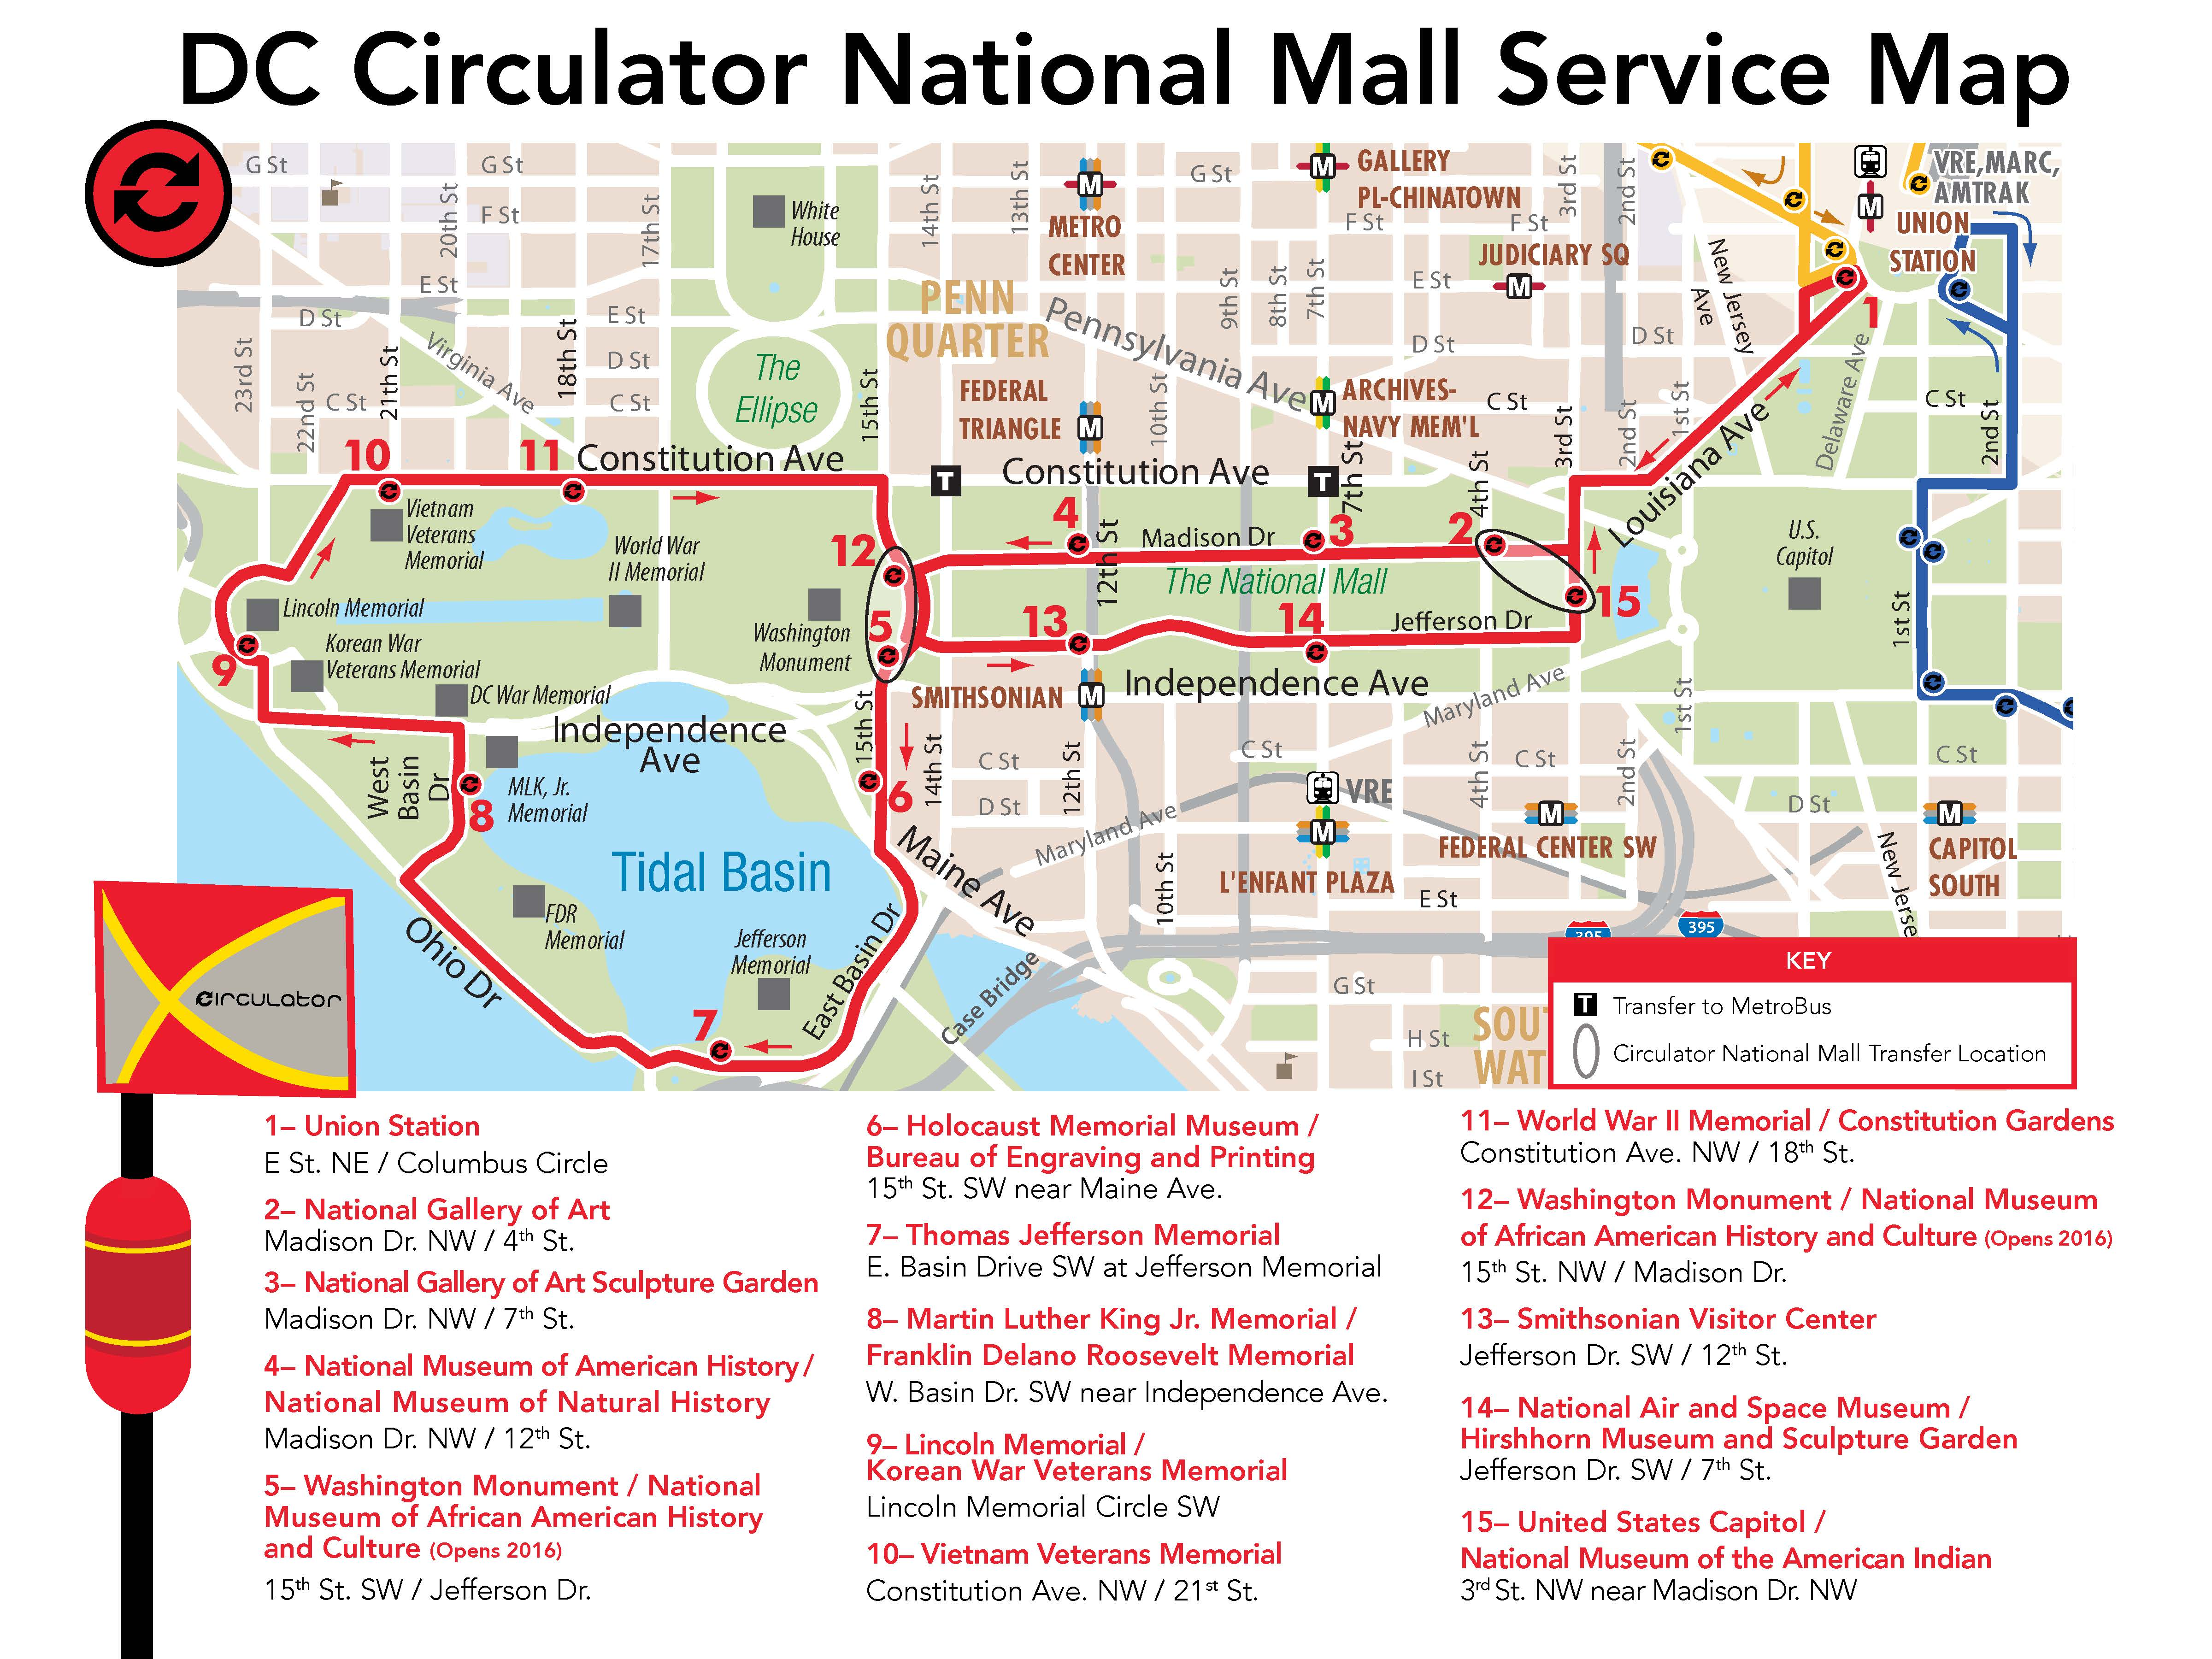 DC Circulator\'s National Mall